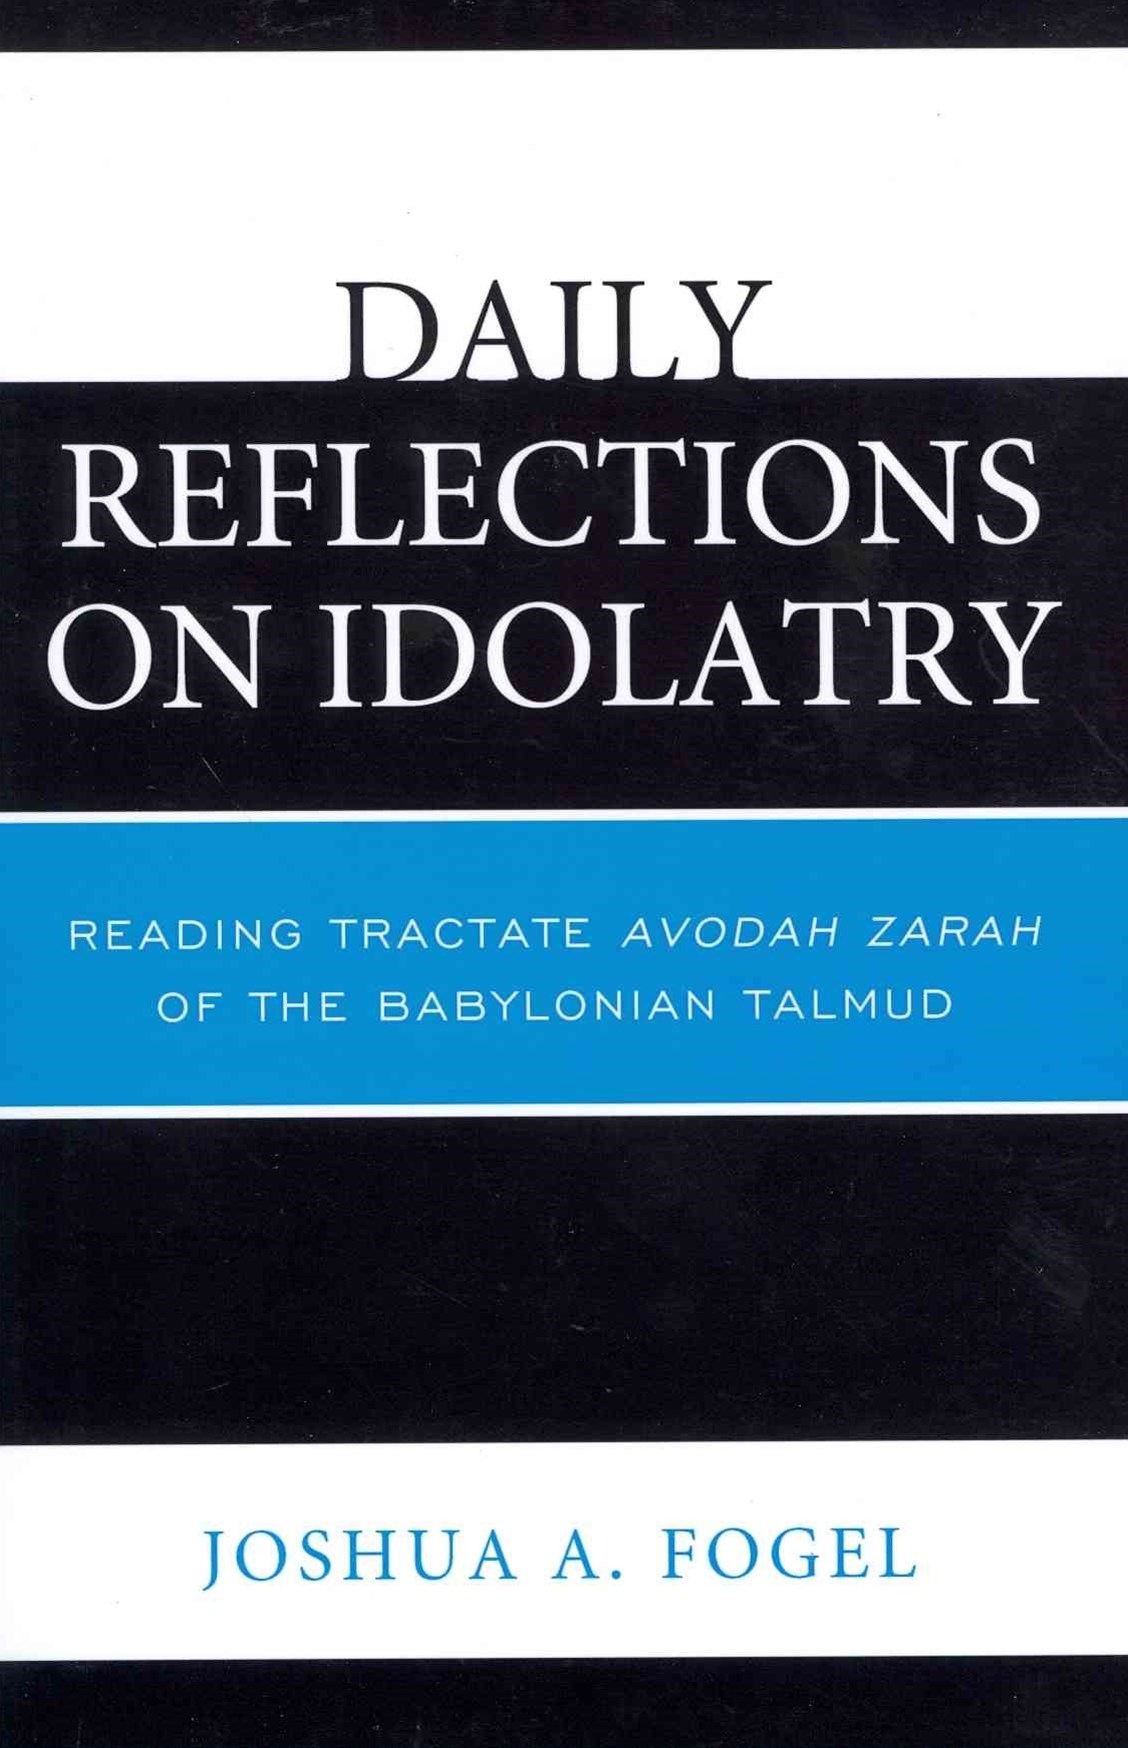 Daily Reflections on Idolatry